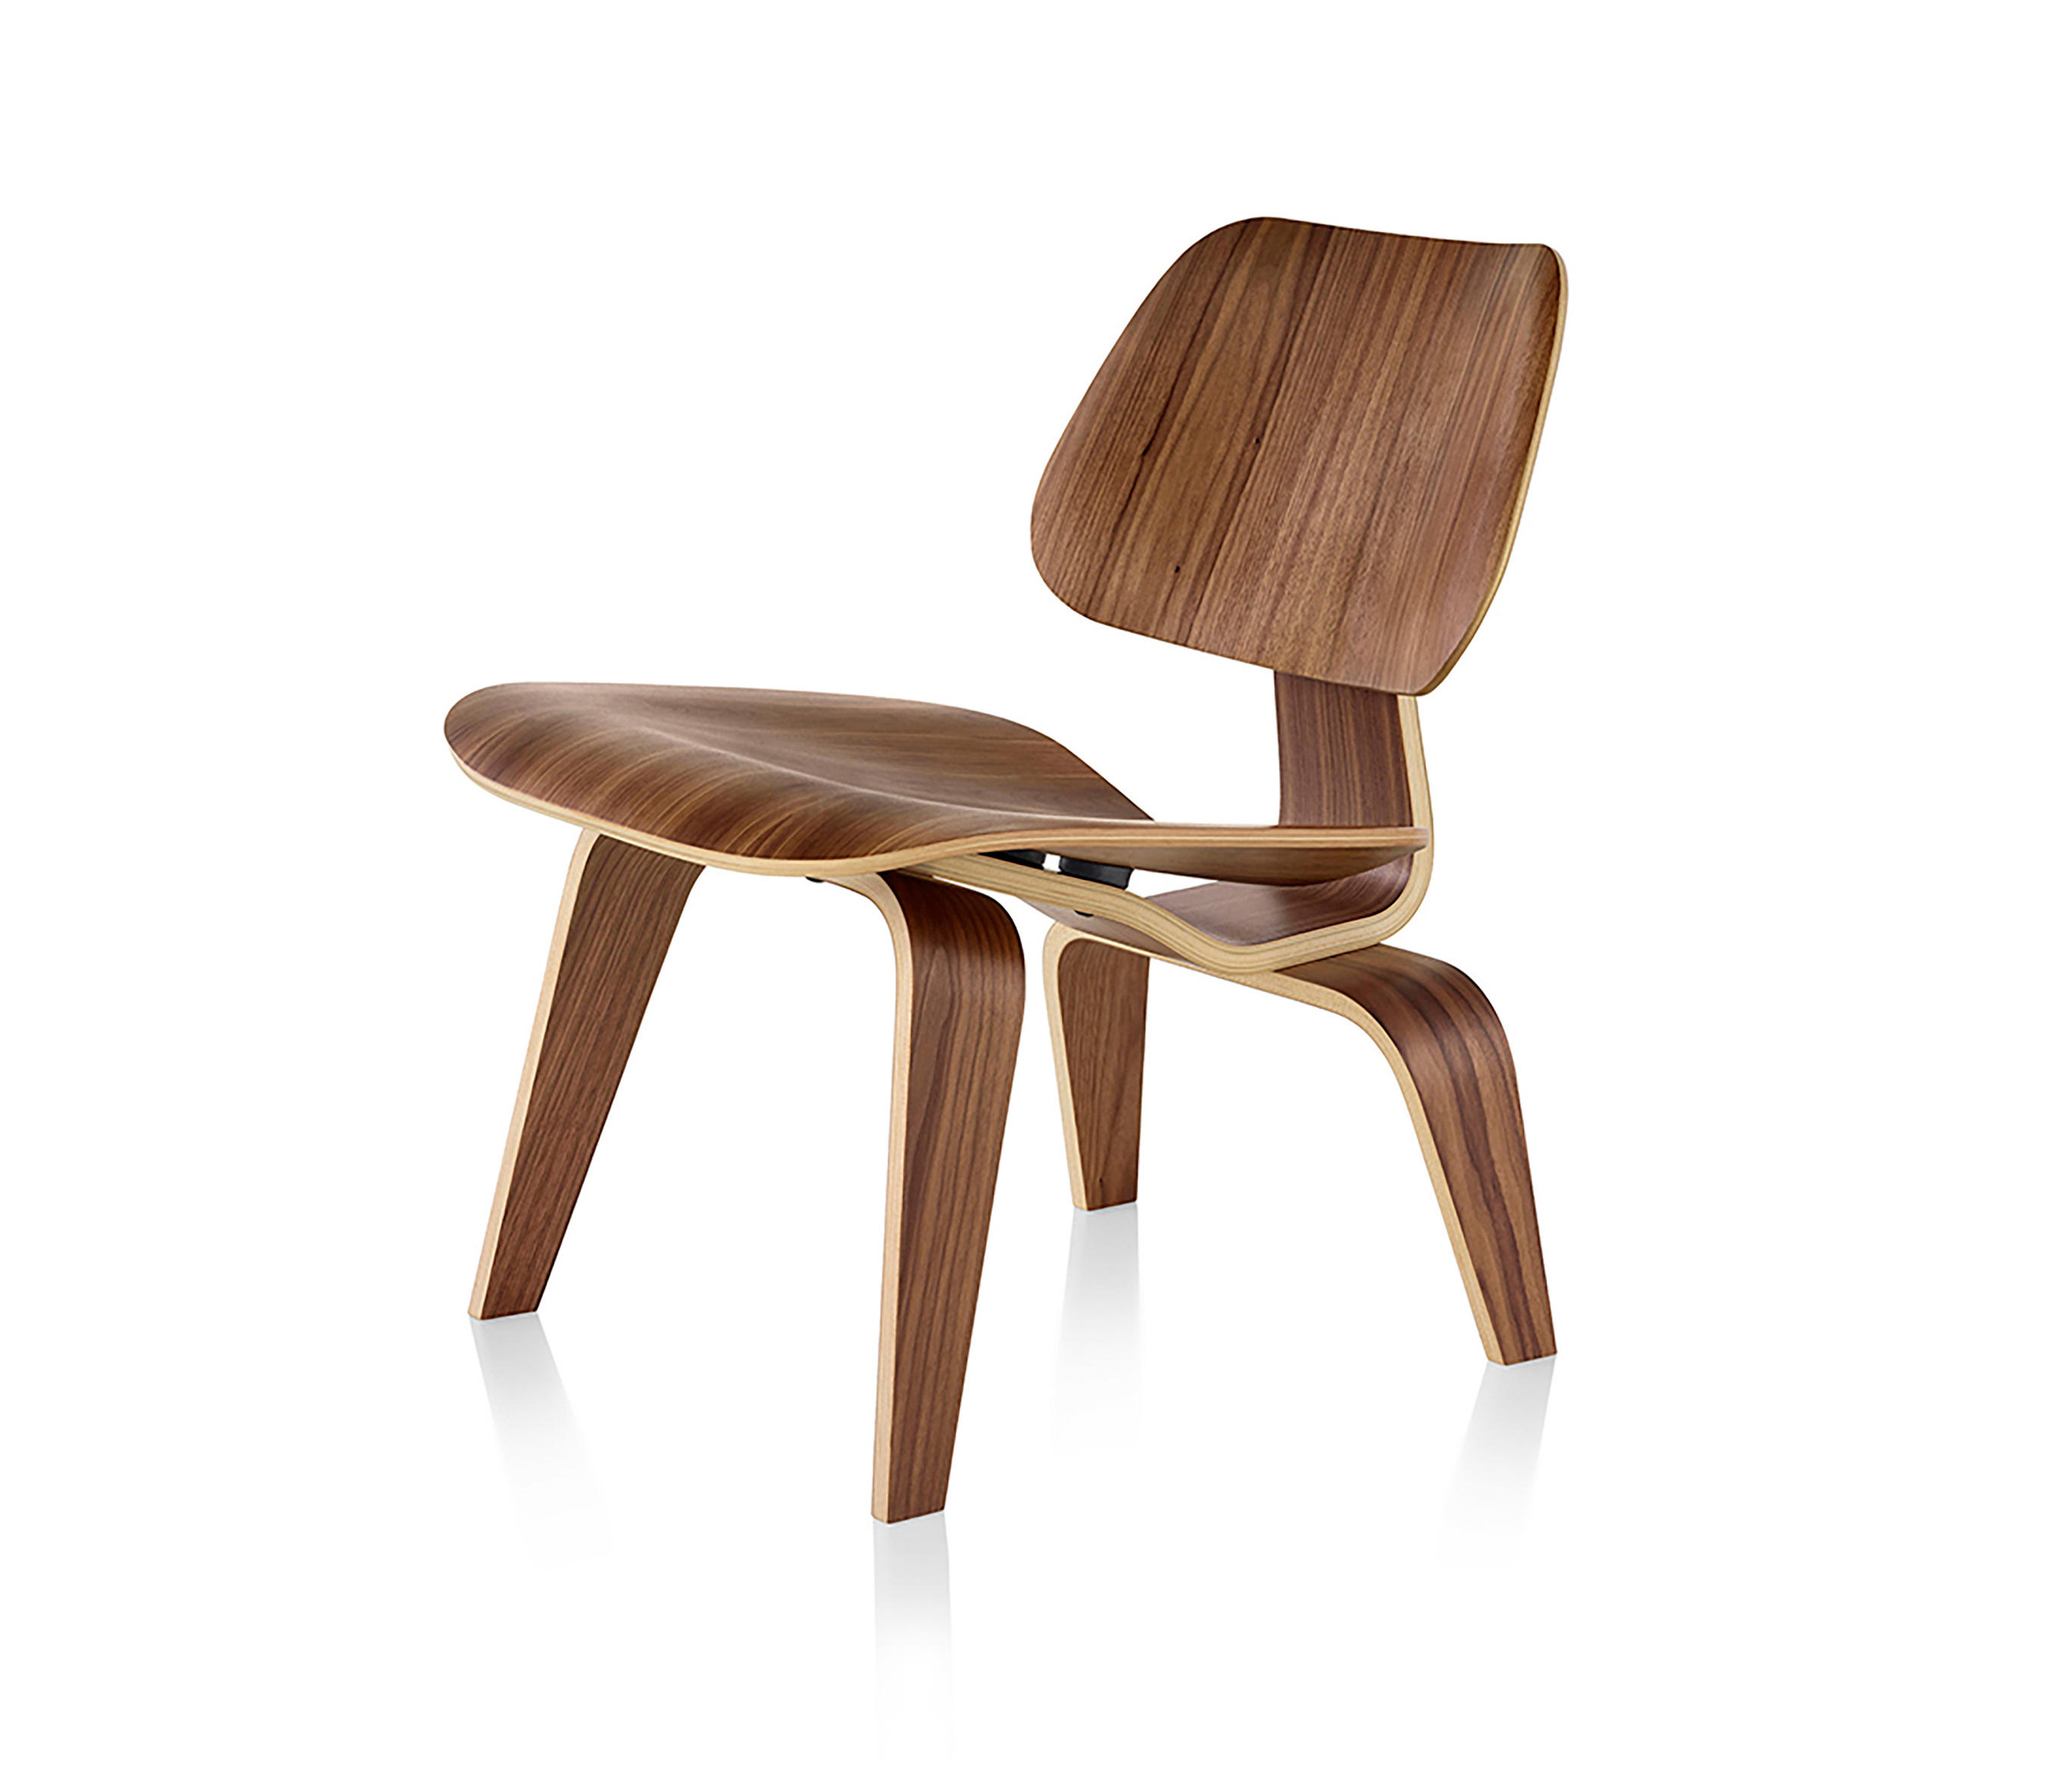 Eames molded plywood lounge chair wood base lounge chairs from herman mille - Lounge chair eames prix ...